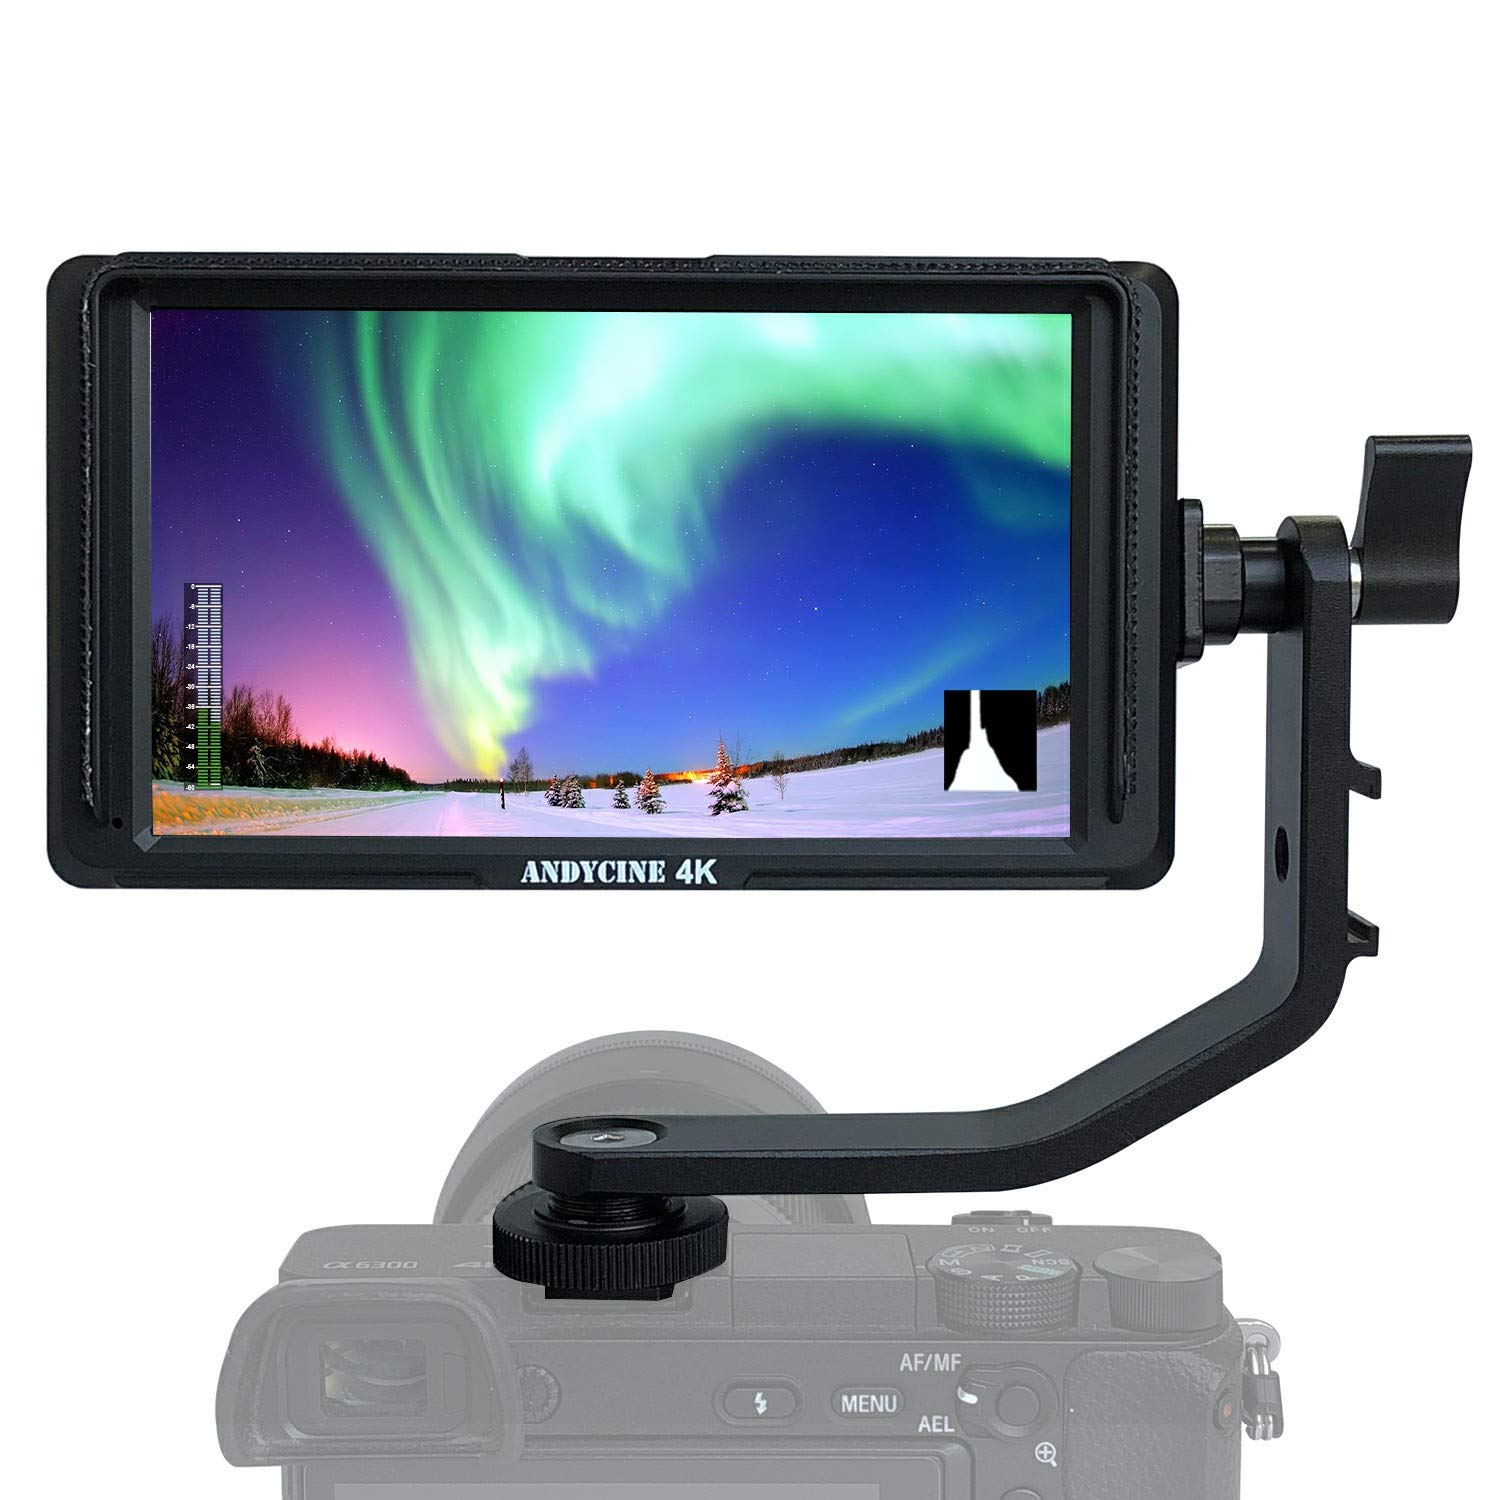 ANDYCINE A6 Lite On Camera Field Monitor 5 Inch Full HD IPS 1920x1080 DSLR Video Peaking Focus Assist with 4K Input Output HDMI 8.4V DC Included Battery/Charger Tilt Arm